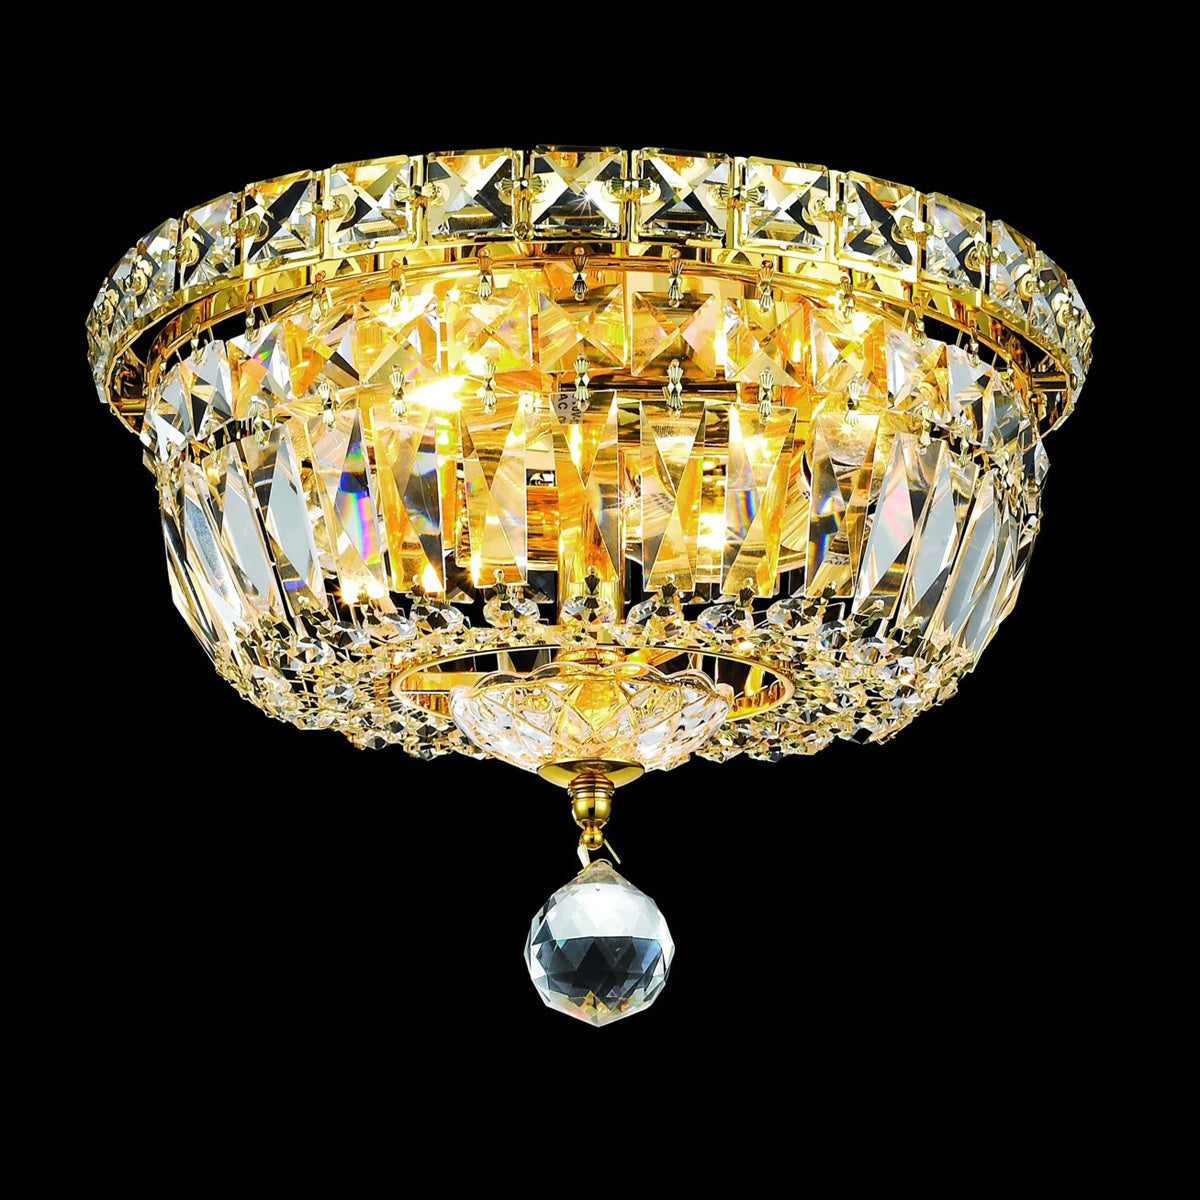 Shop Elegant Lighting Crystal Chandelier Gold Flush Mount Light - Free  Shipping Today - Overstock - 6265509 a57ac0361136